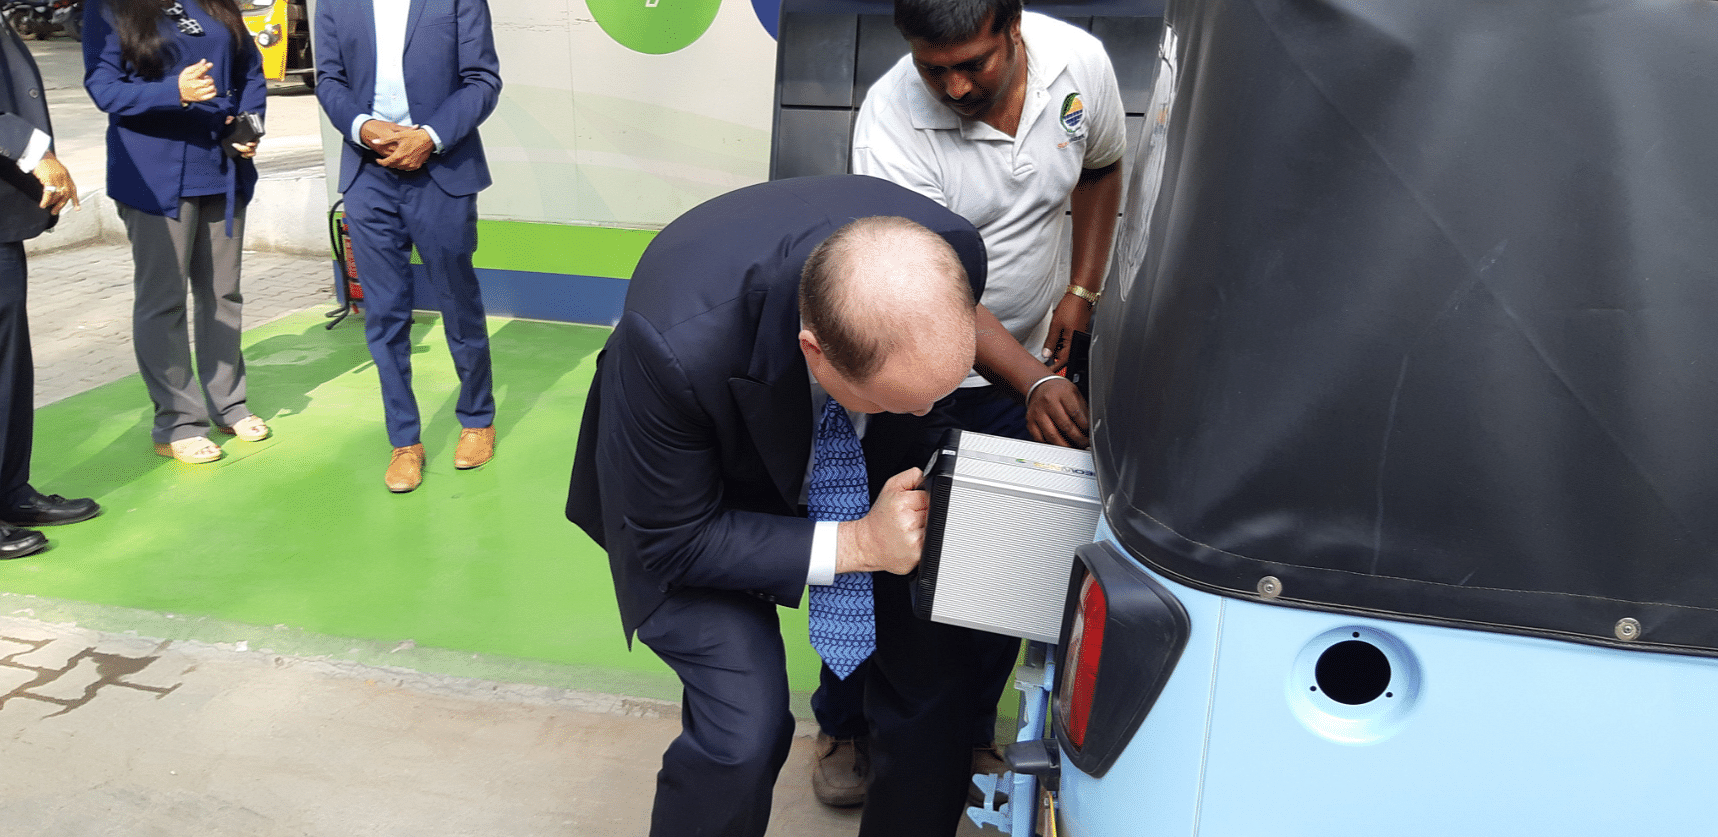 Inserting the swappable battery into the auto rickshaw. (Source: Twitter/SUN Mobility)